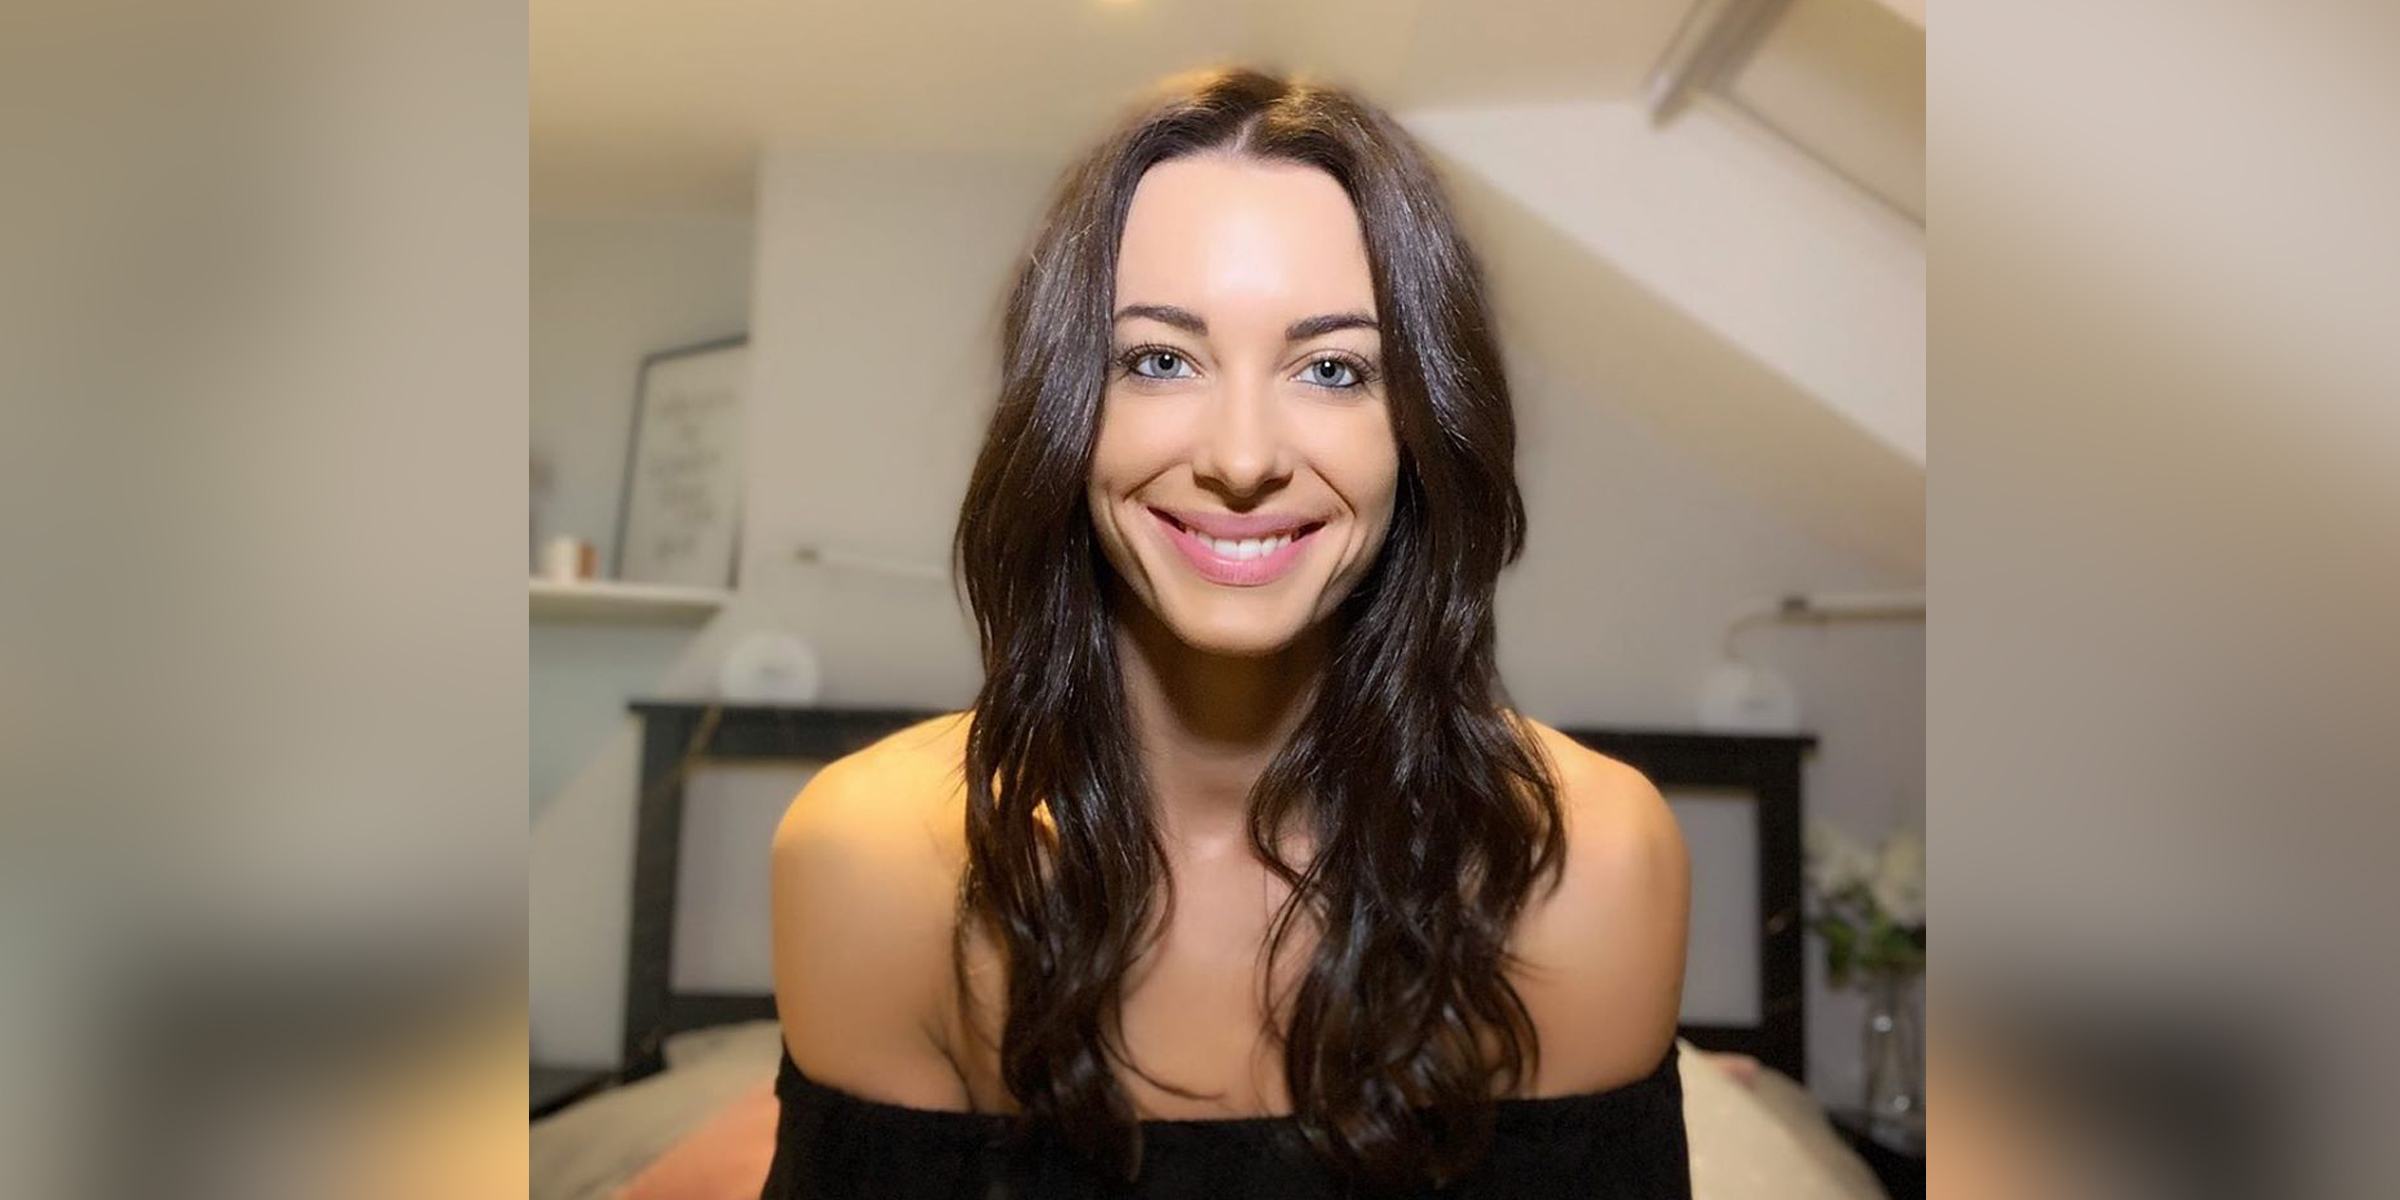 YouTube star Emily Hartridge dies in scooter accident at age 35